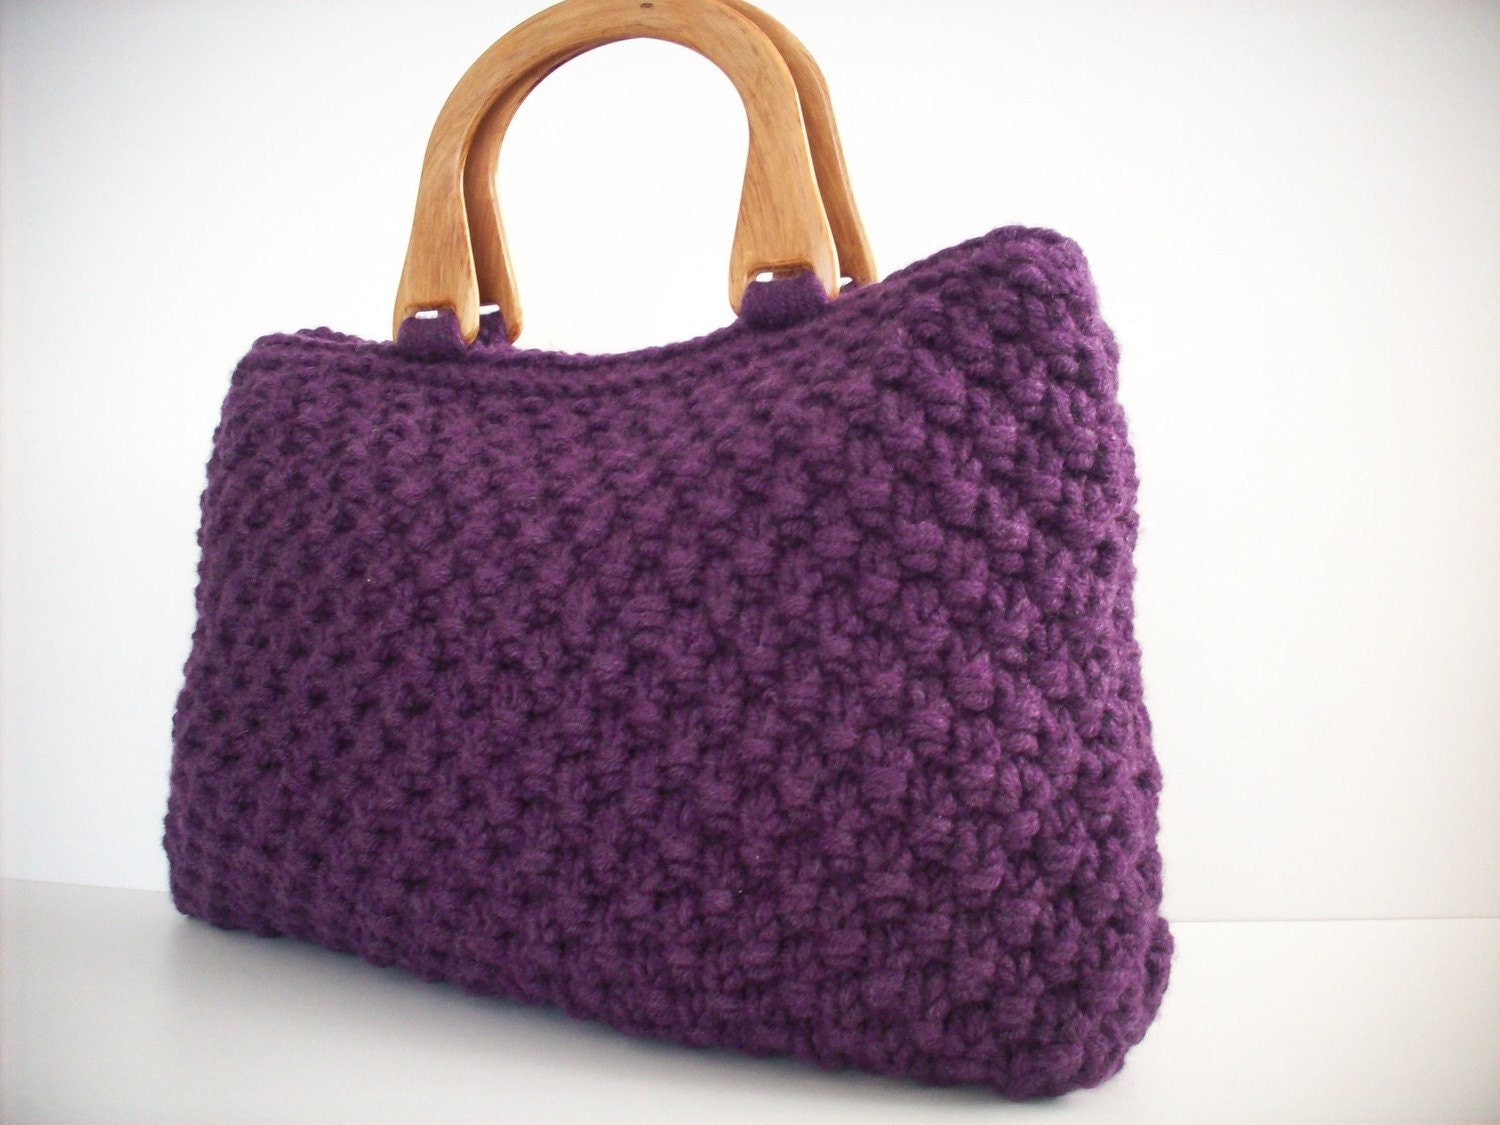 Knitting Pattern Lavender Bag : NzLbags Handbag Knitted Bag Nr-057 Purple